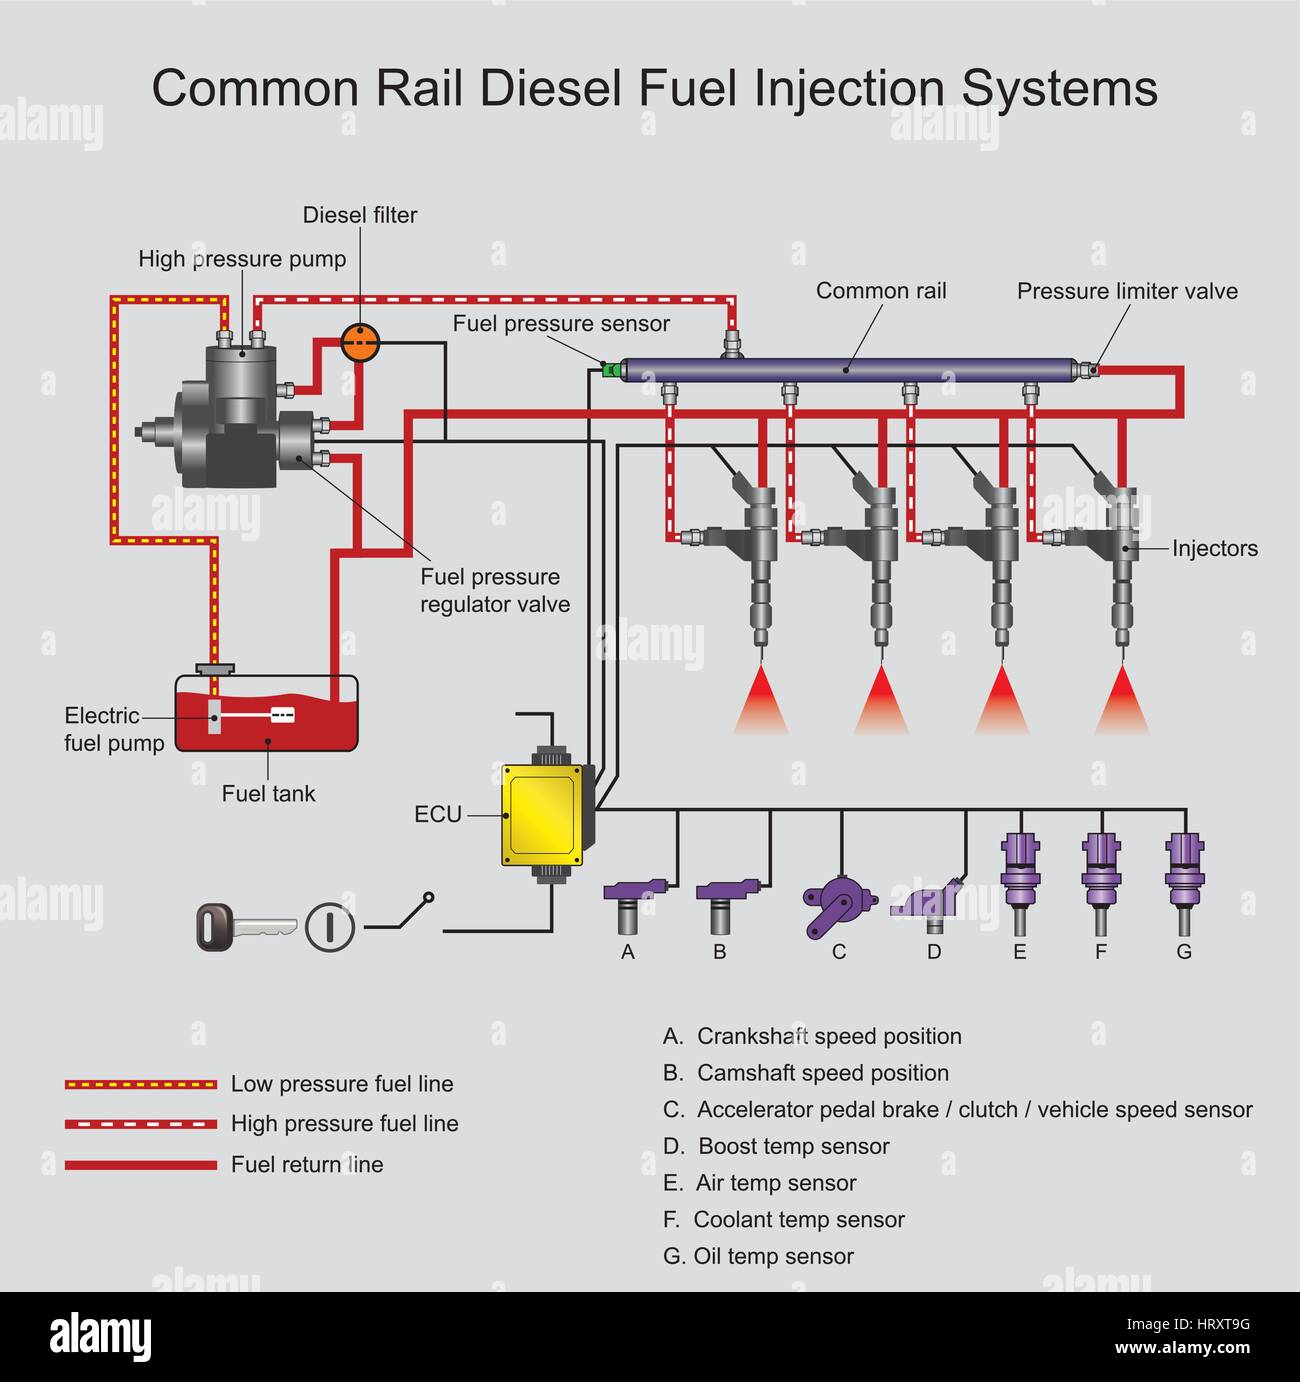 common rail direct fuel injection is a direct fuel injection system rh alamy com multipoint fuel injection system diagram fuel injection system line diagram